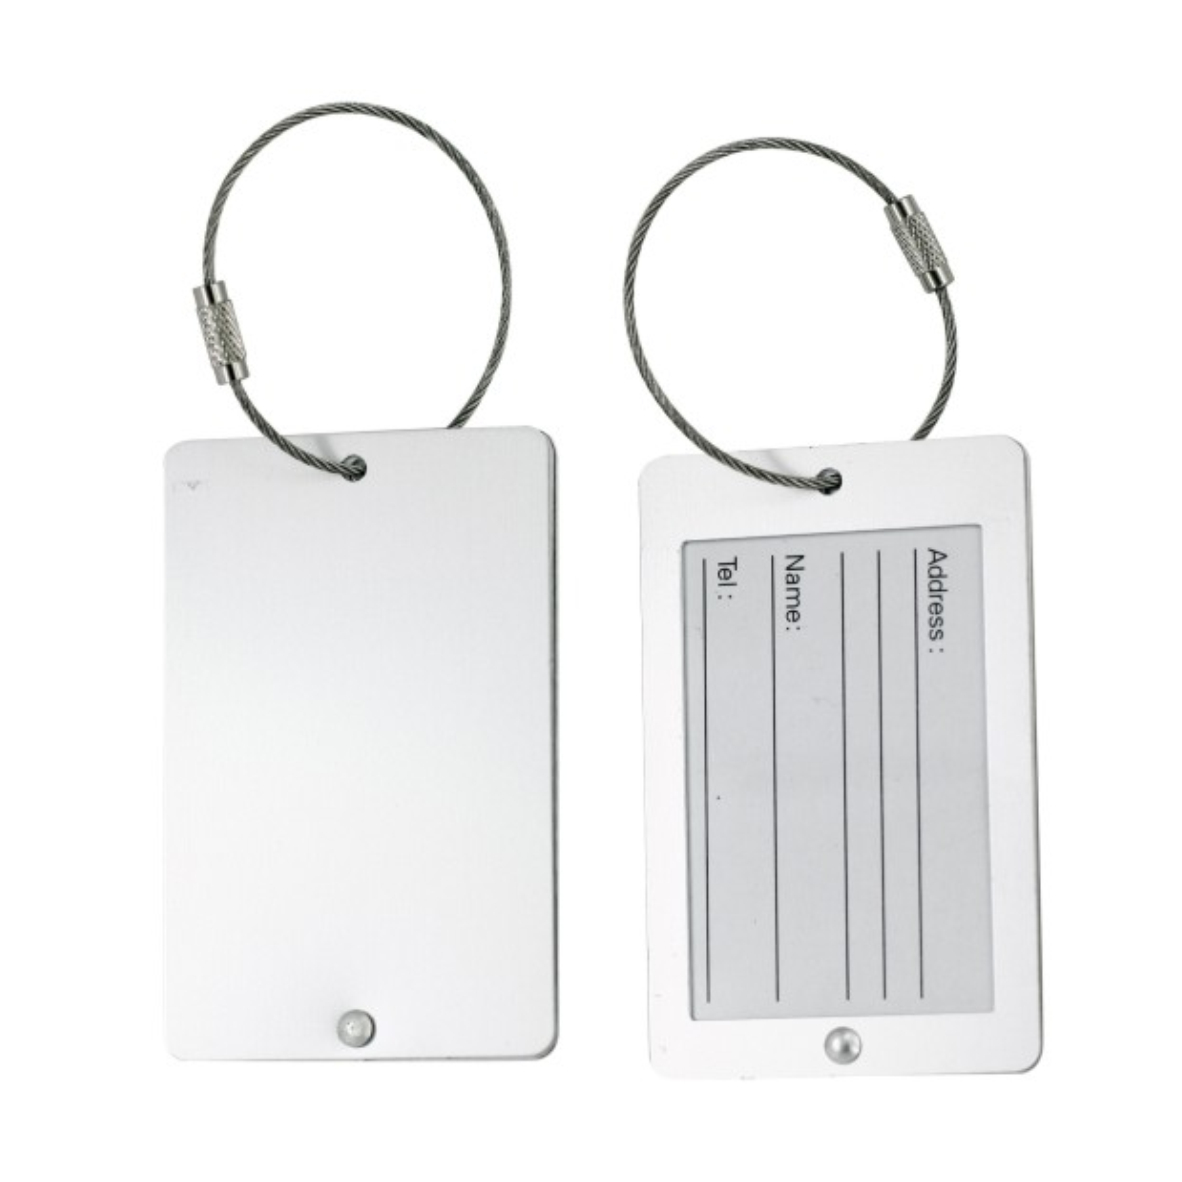 UK053 Luggage Tag with wire cable